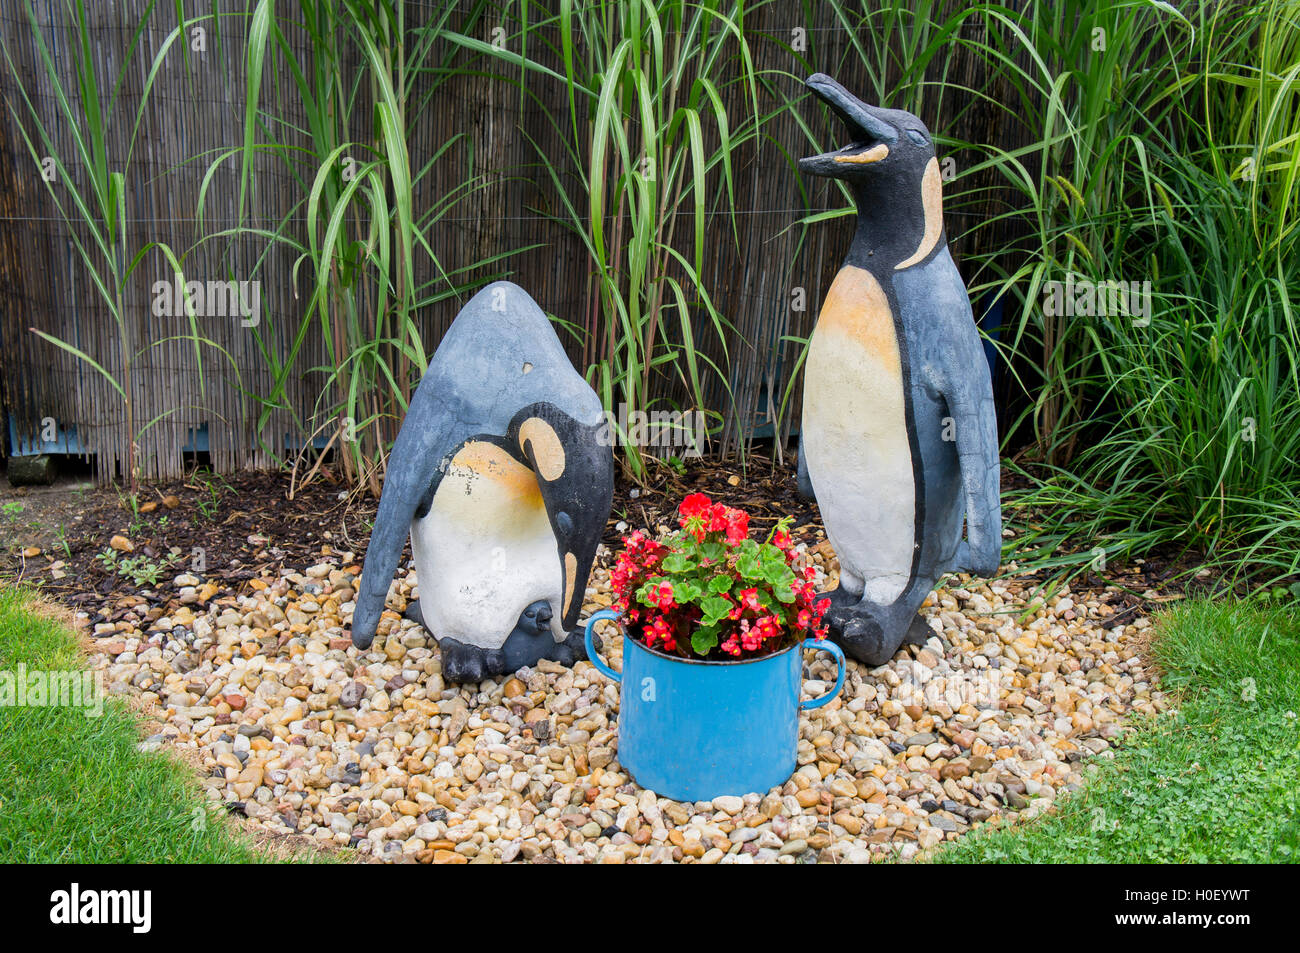 sculpture King penguin, Aptenodytes patagonicus - Stock Image